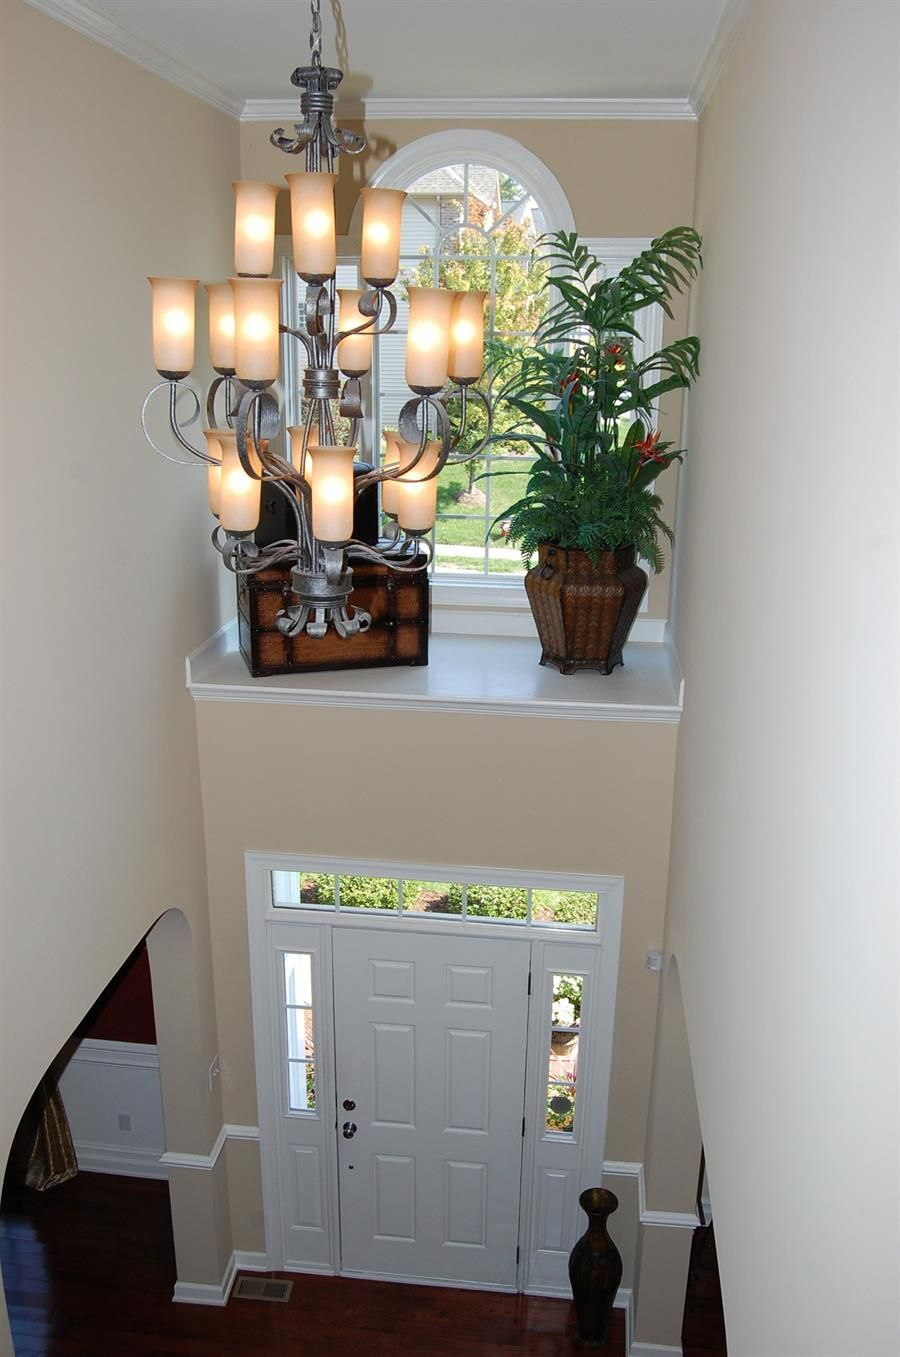 Two Story Foyer With Shelf Above Door With Window What Idiot Came